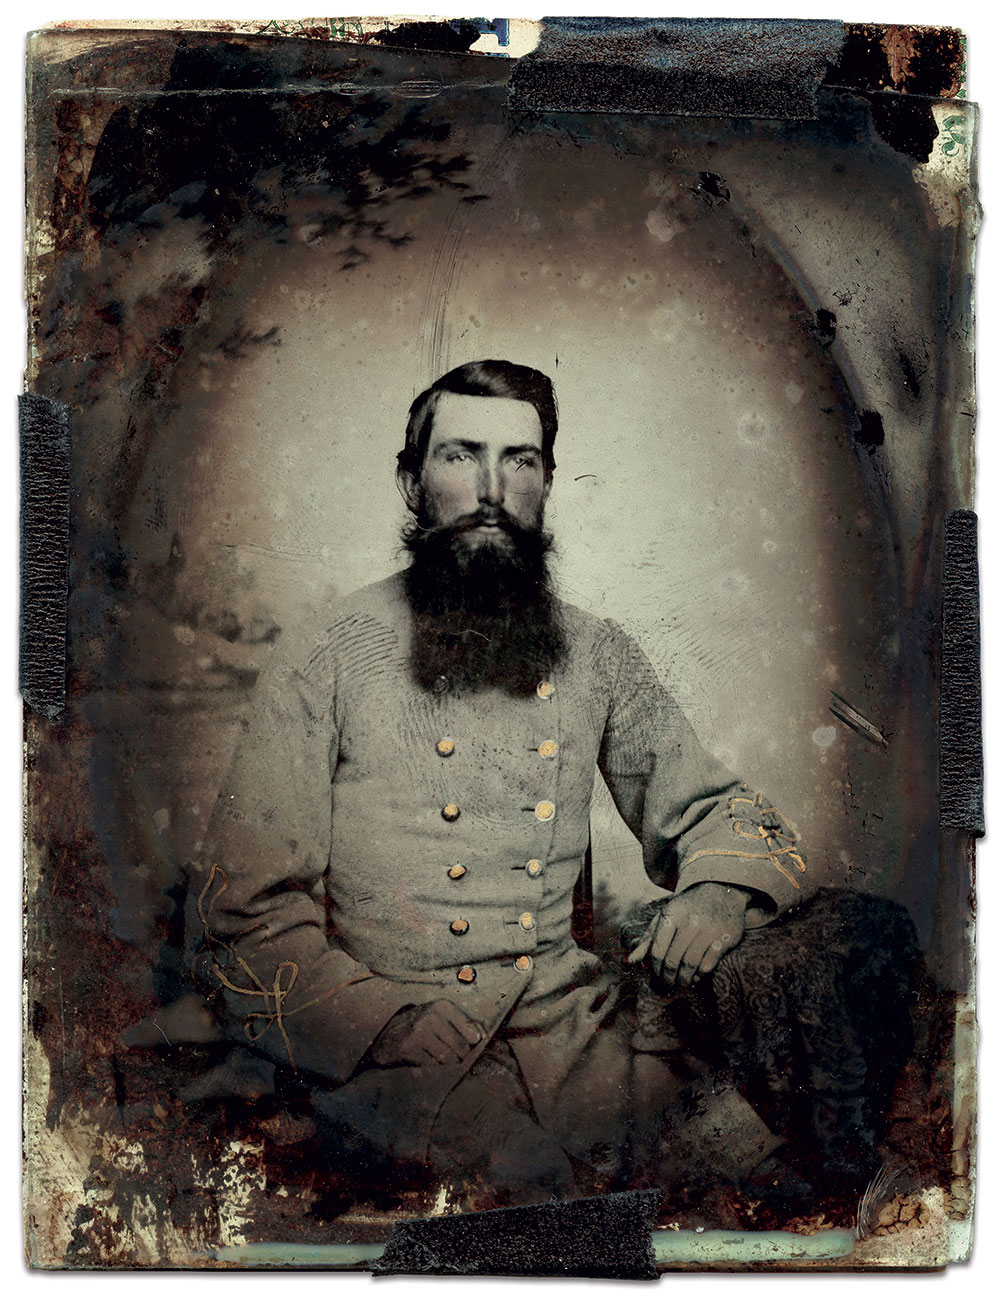 Quarter-plate ambrotype by an anonymous photographer. Chris Anderson Collection.